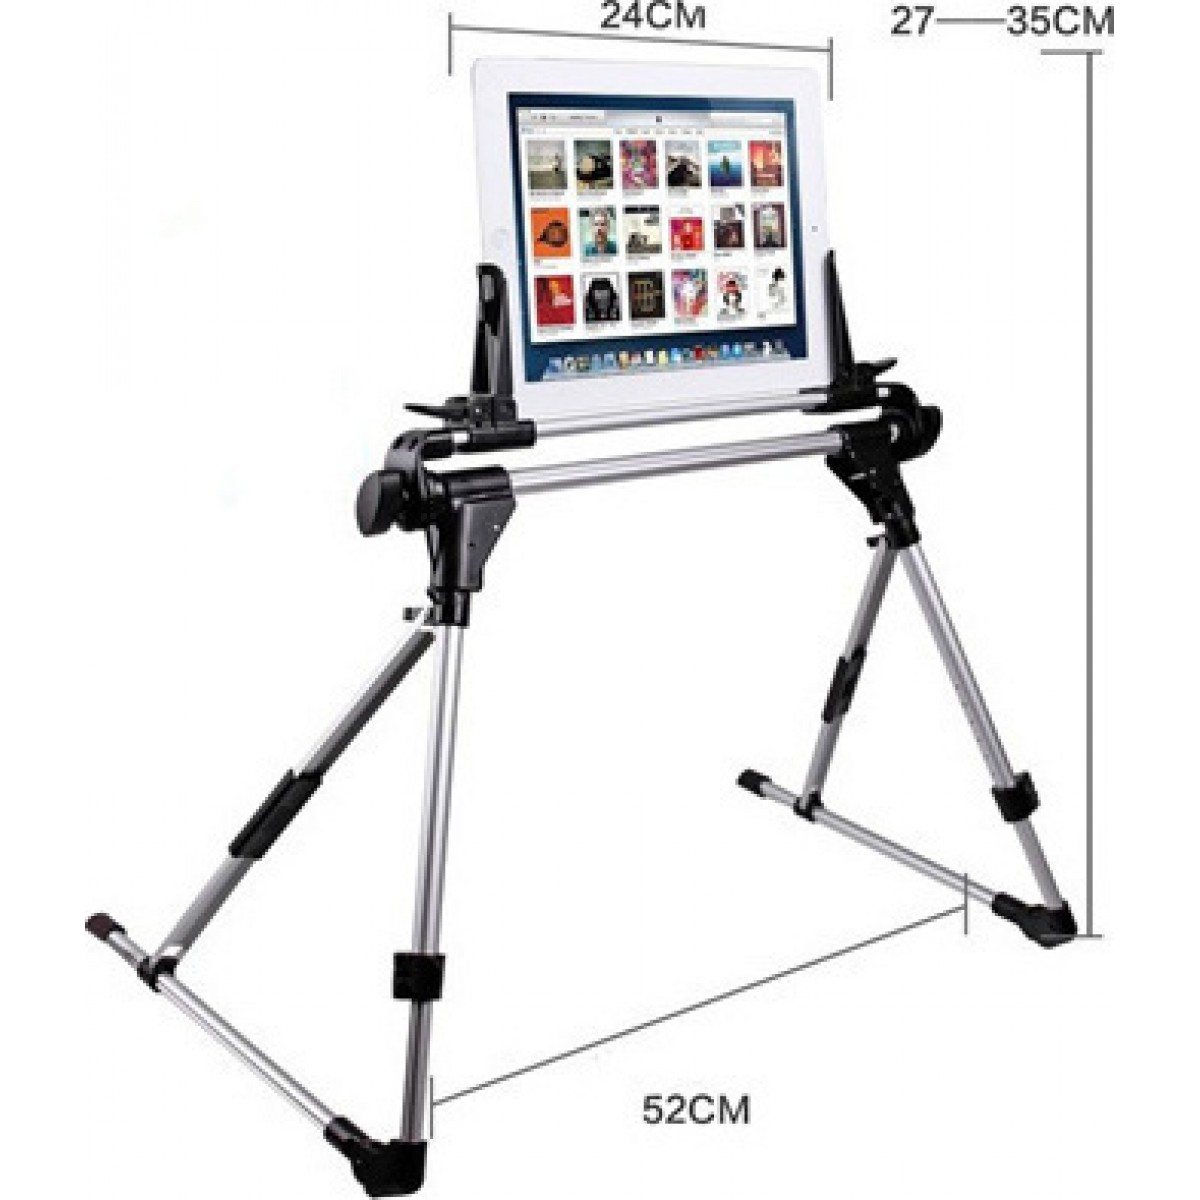 Βάση για Tablet iPad, Smartphone, iPhone, iPad Mini, iPad Air Ipad Stand 201